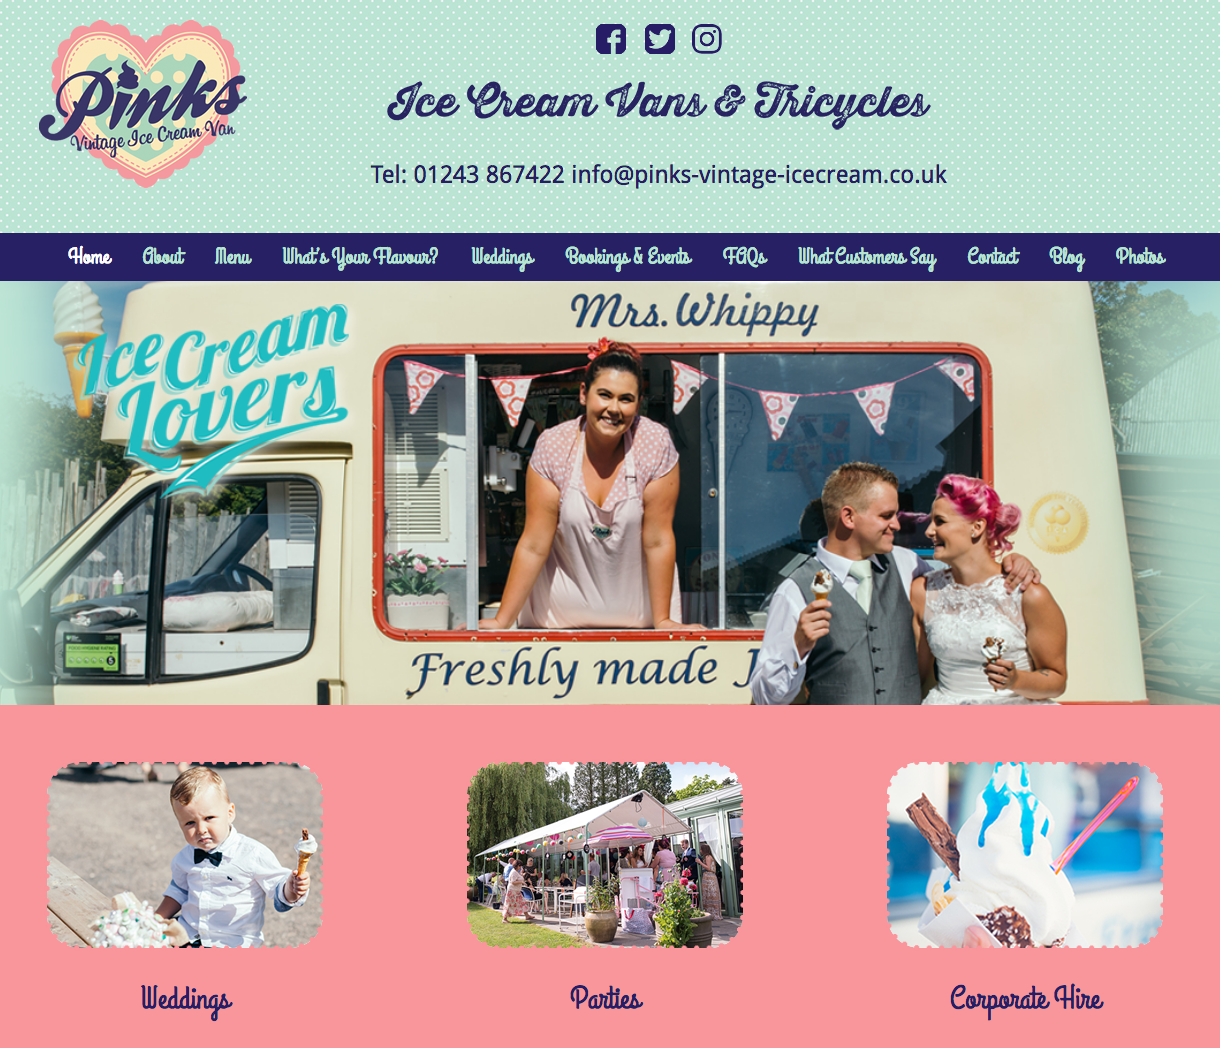 Web design for Pinks Vintage Ice Cream